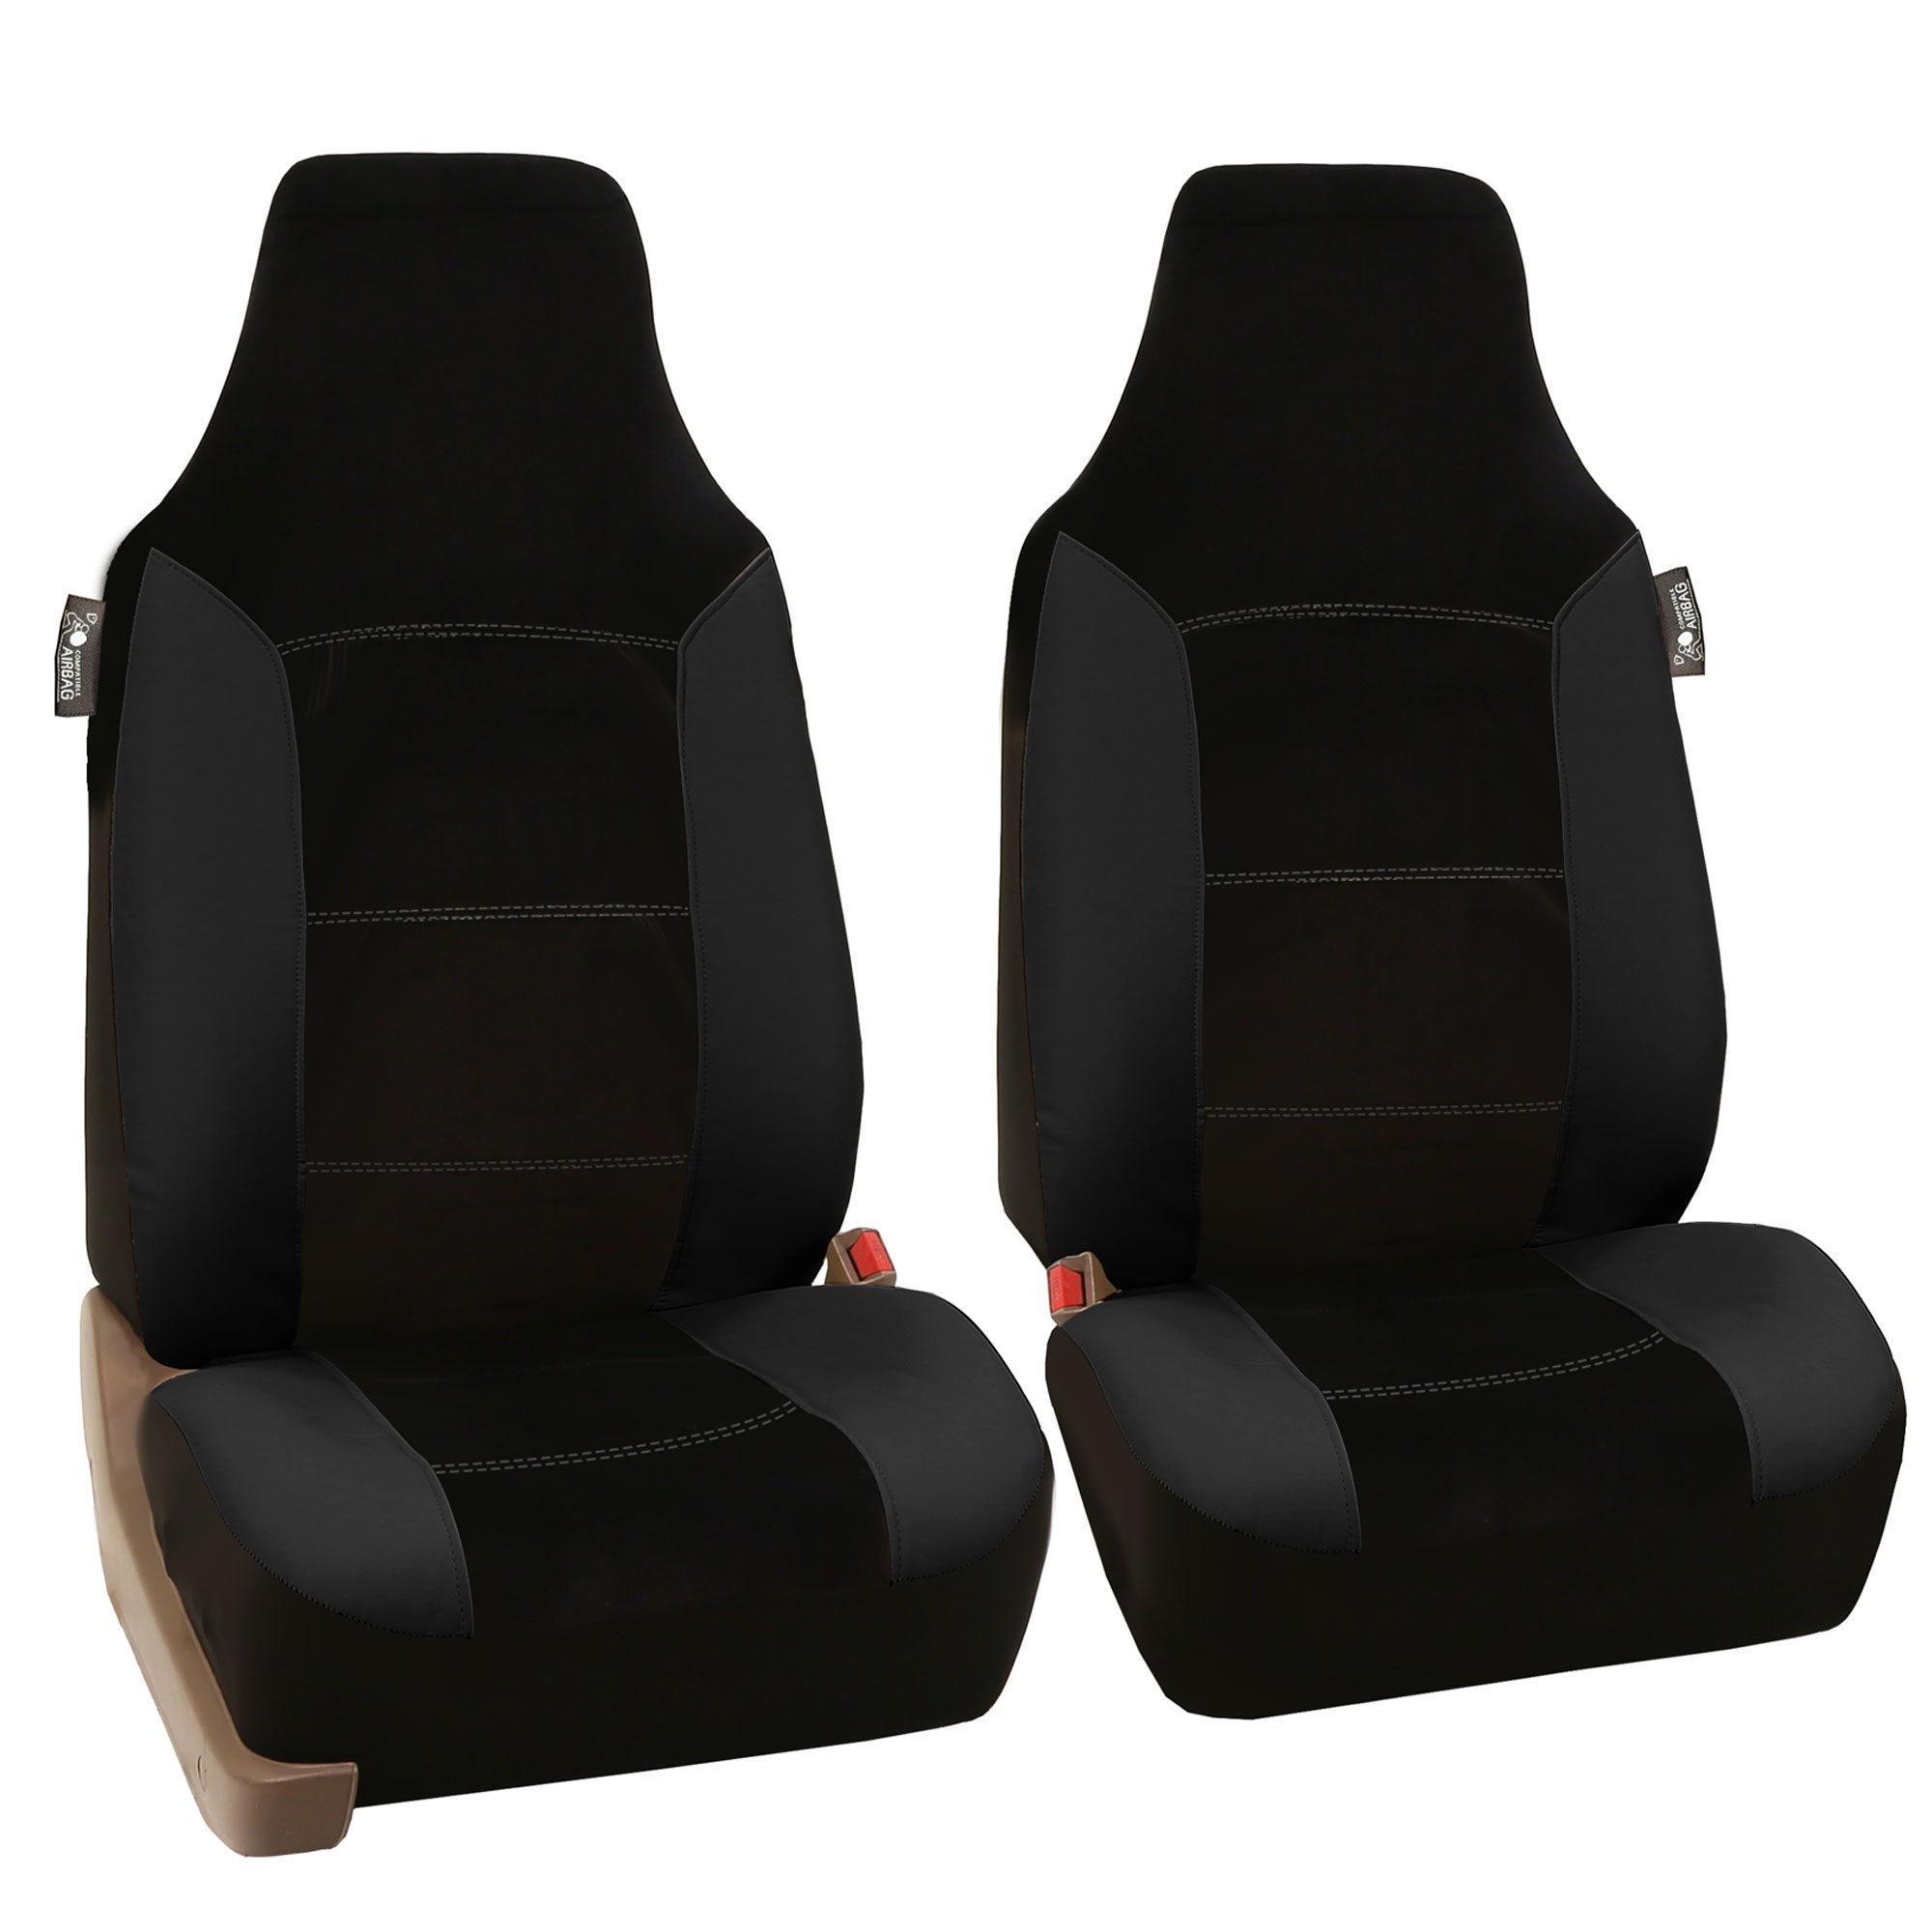 Car Seat Covers Set for Auto w/Floor Mat Black 810311115603 | eBay